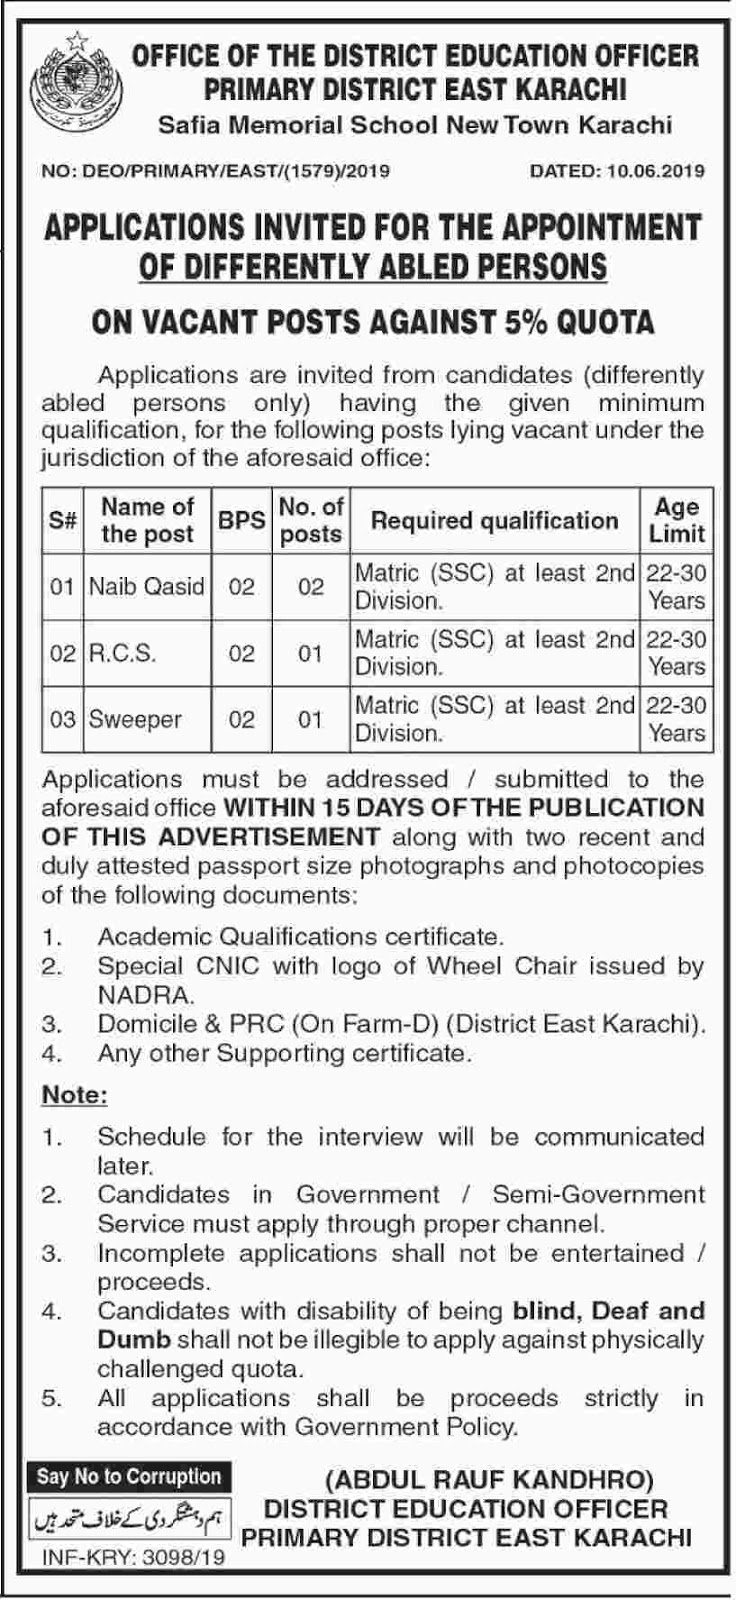 Office of the District Education officer primary District East Karachi June 2019